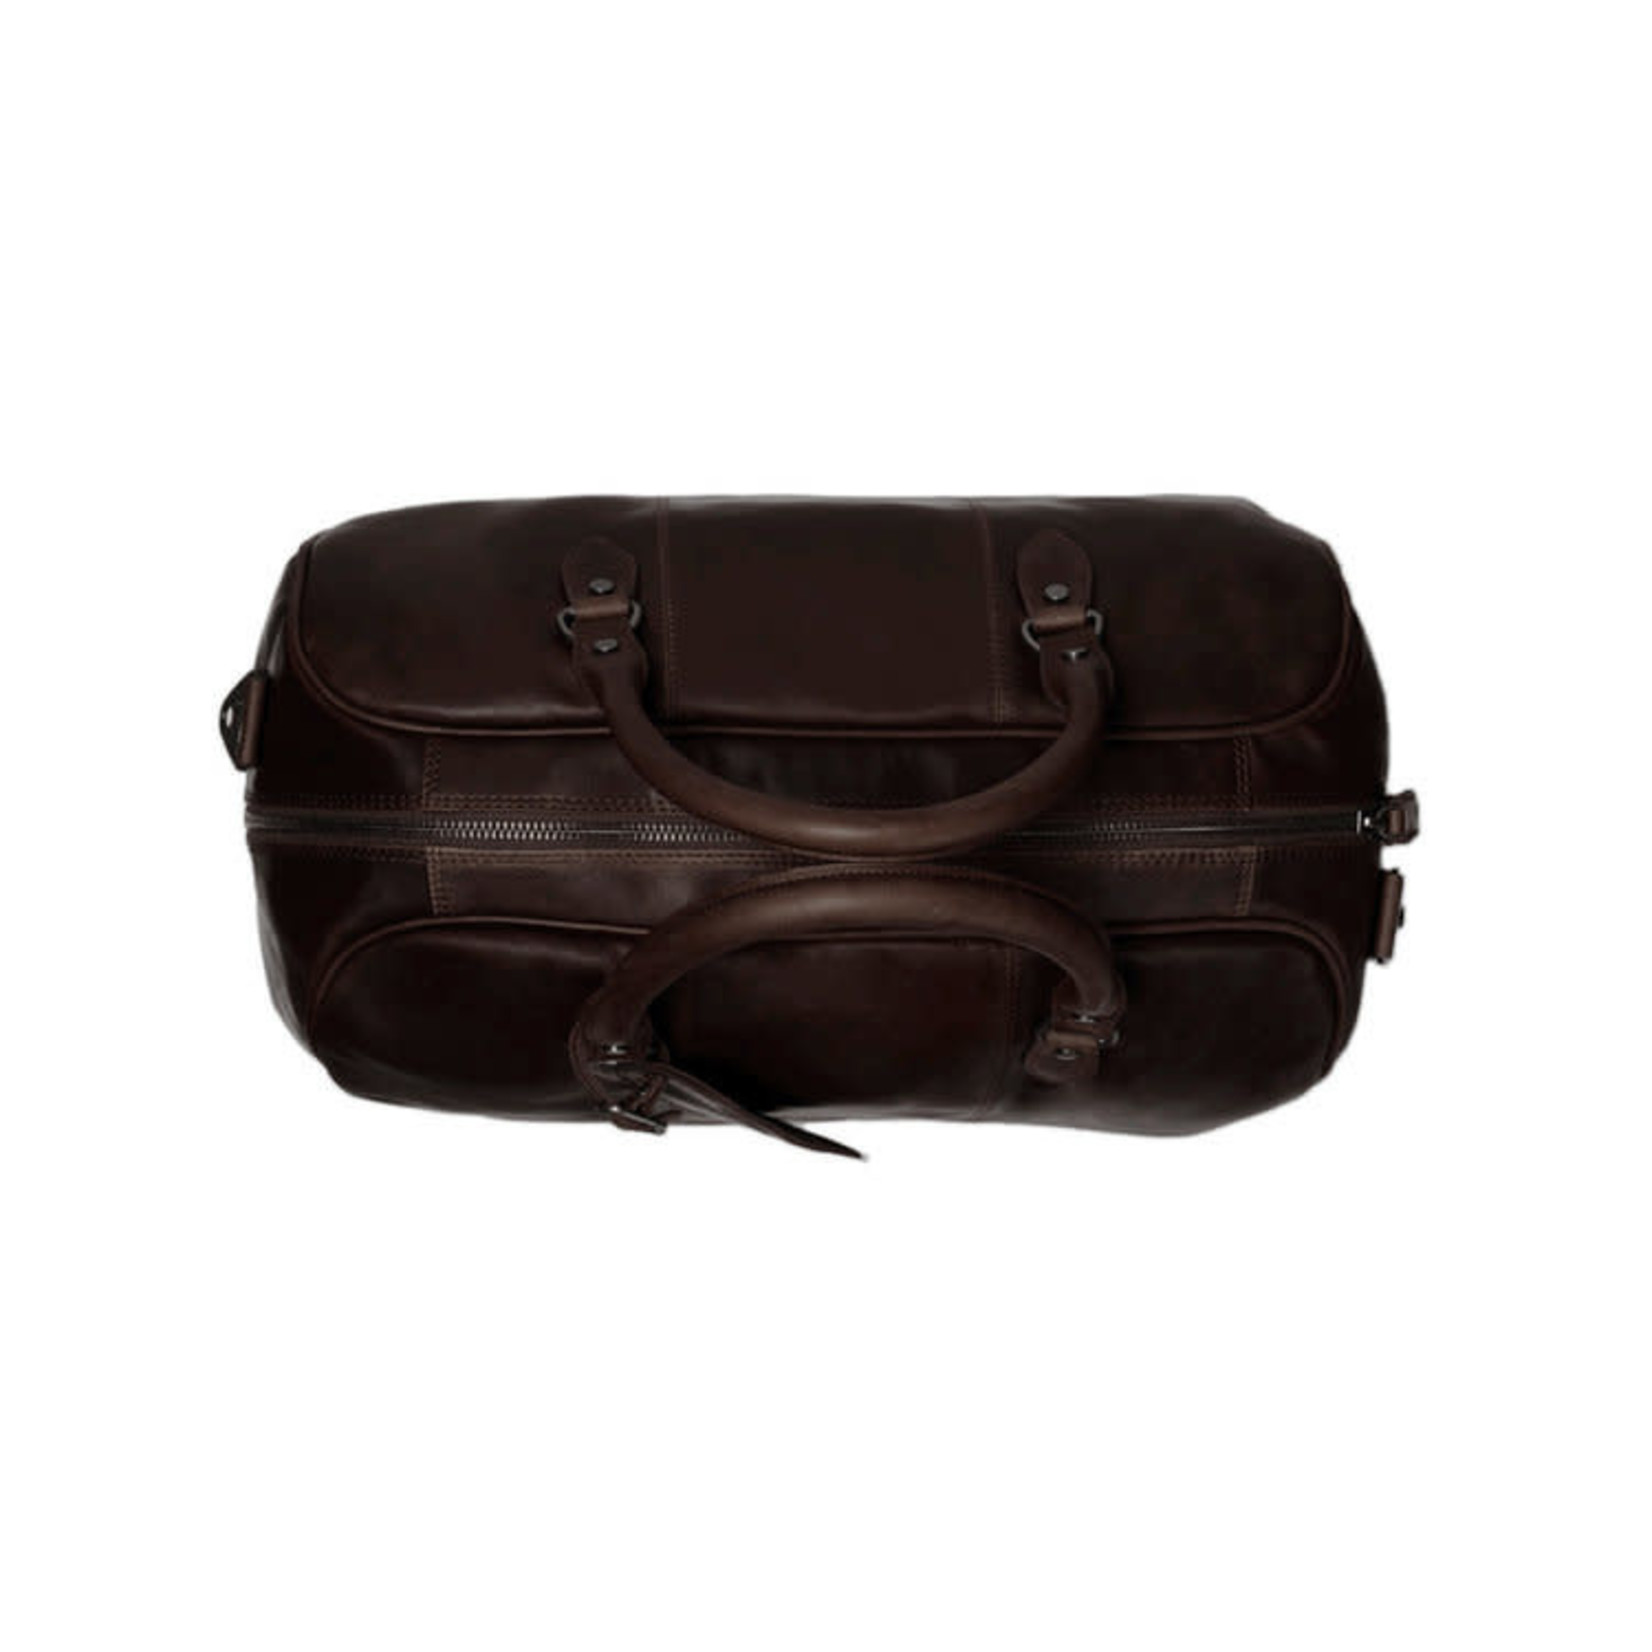 Chesterfield Travelbag Liam Brown